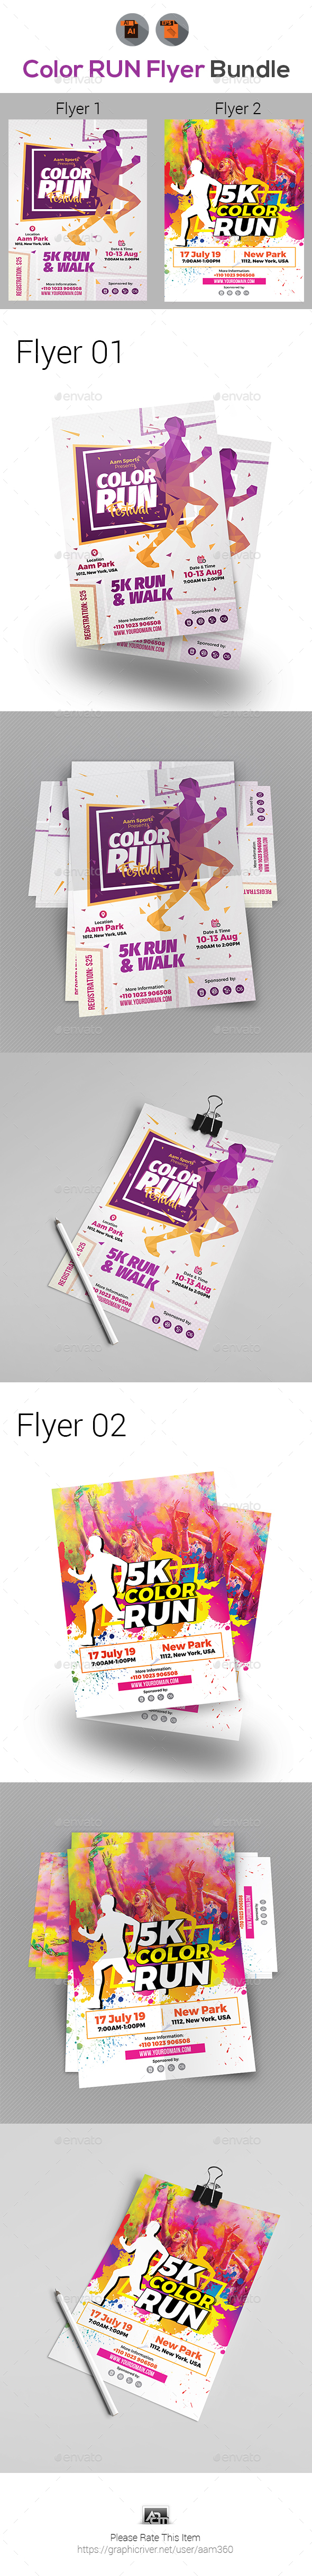 Color Run Event Flyer Bundle - Events Flyers